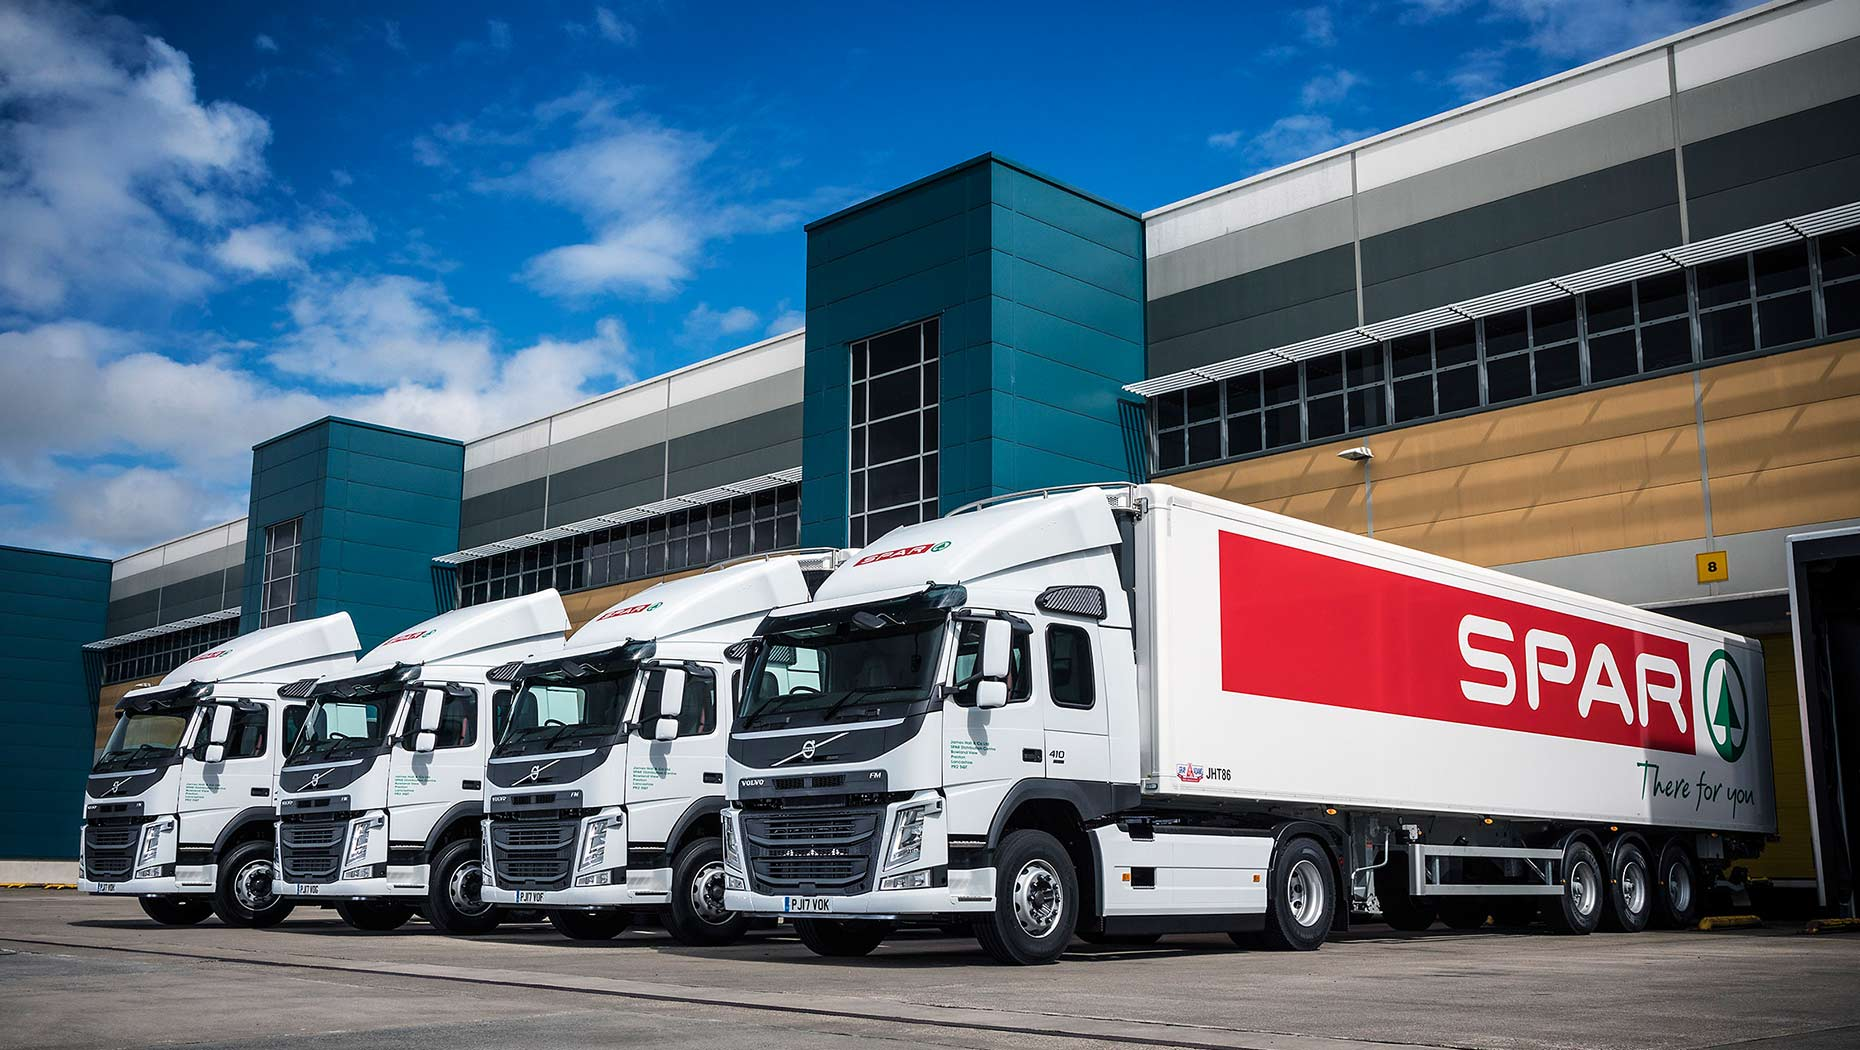 Eight new Volvo trucks, six FM 4x2 tractor units and two FE 6x2 rigid